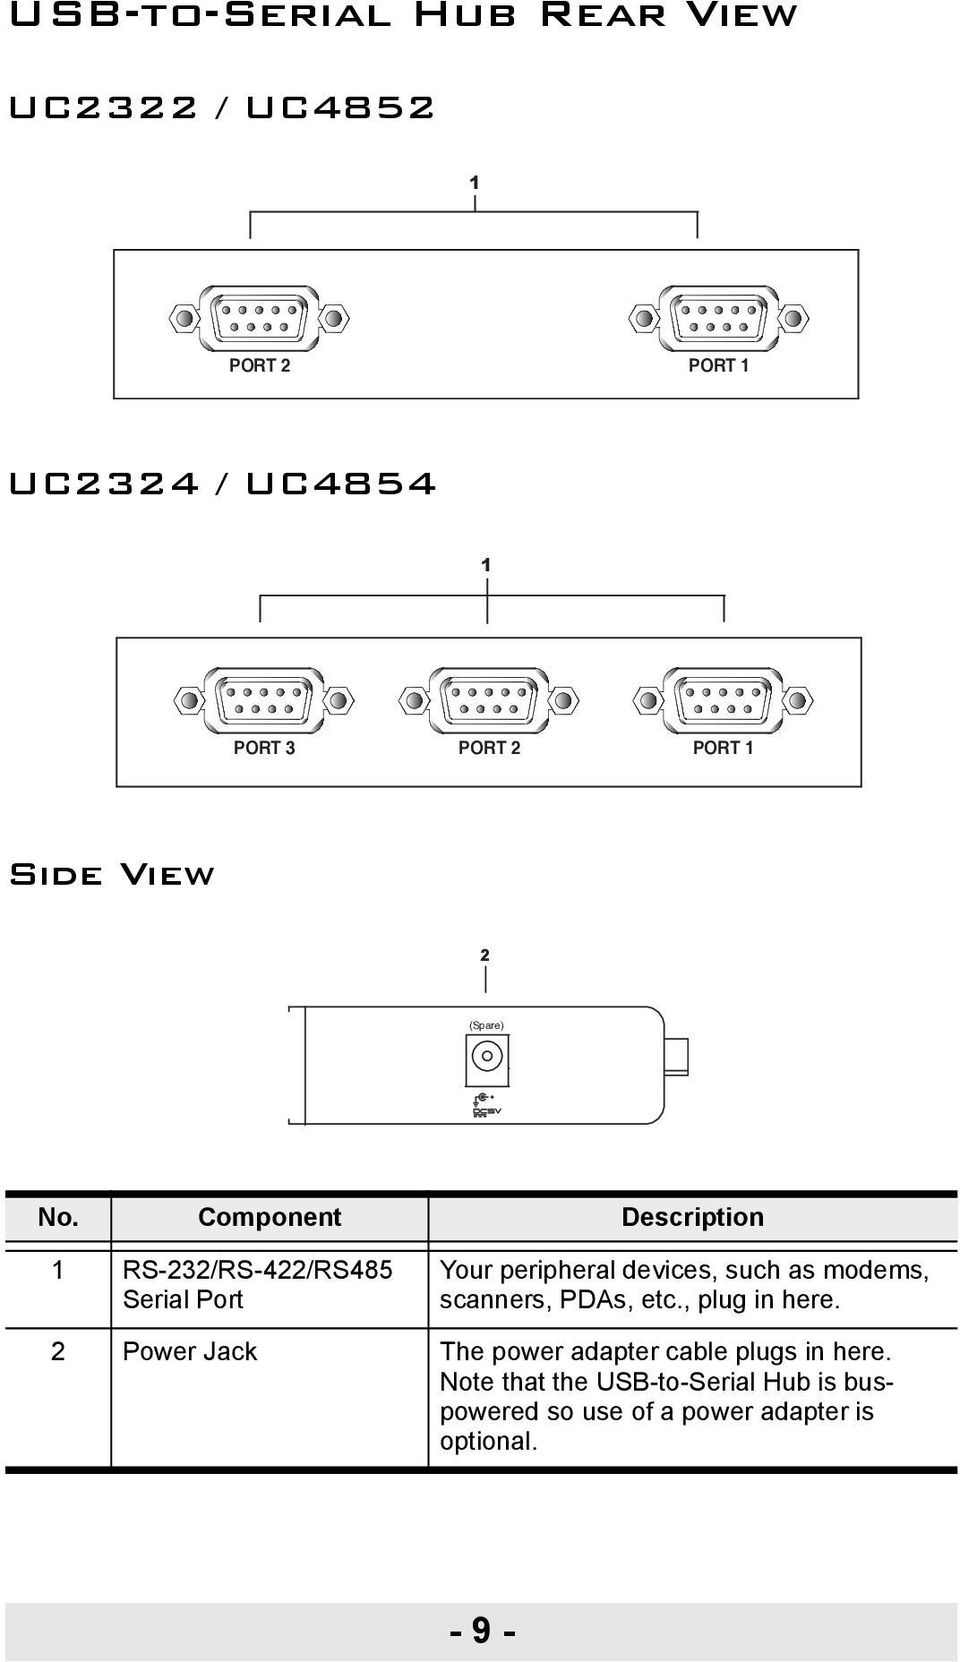 Component Description 1 RS-232/RS-422/RS485 Serial Port Your peripheral devices, such as modems,